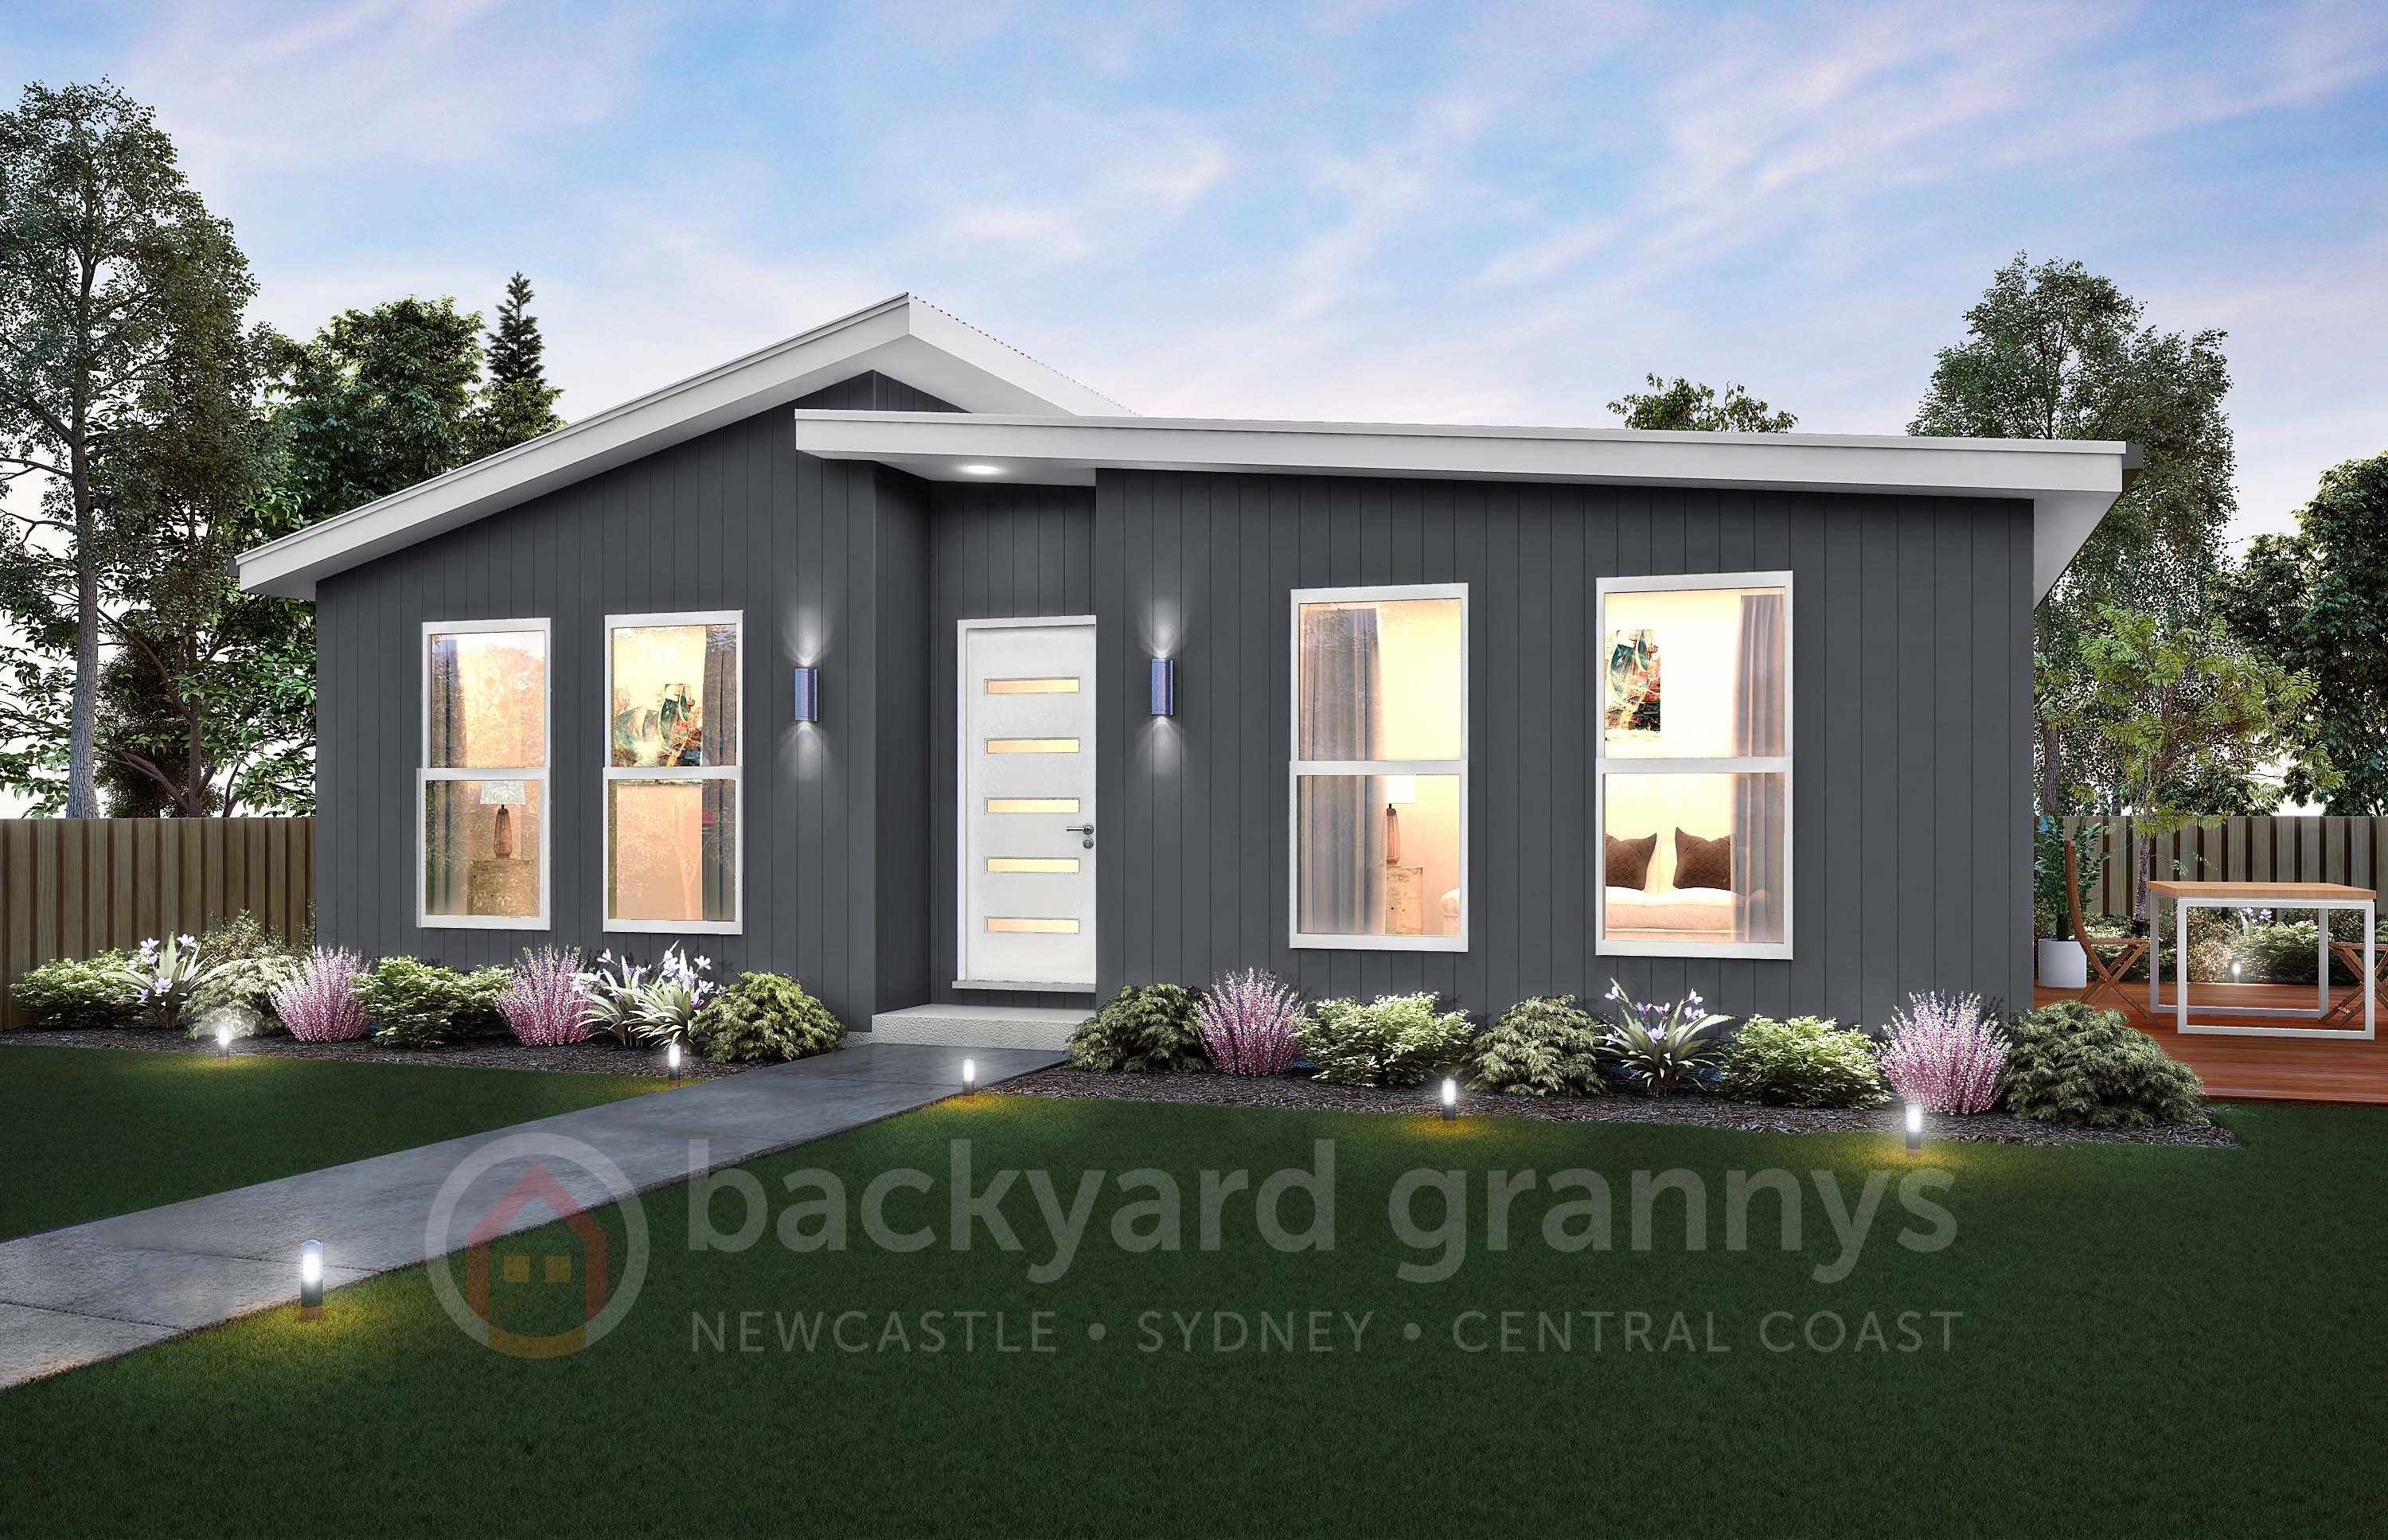 Best The Alba – 2 Bedroom Granny Flat Design Backyard Grannys With Pictures